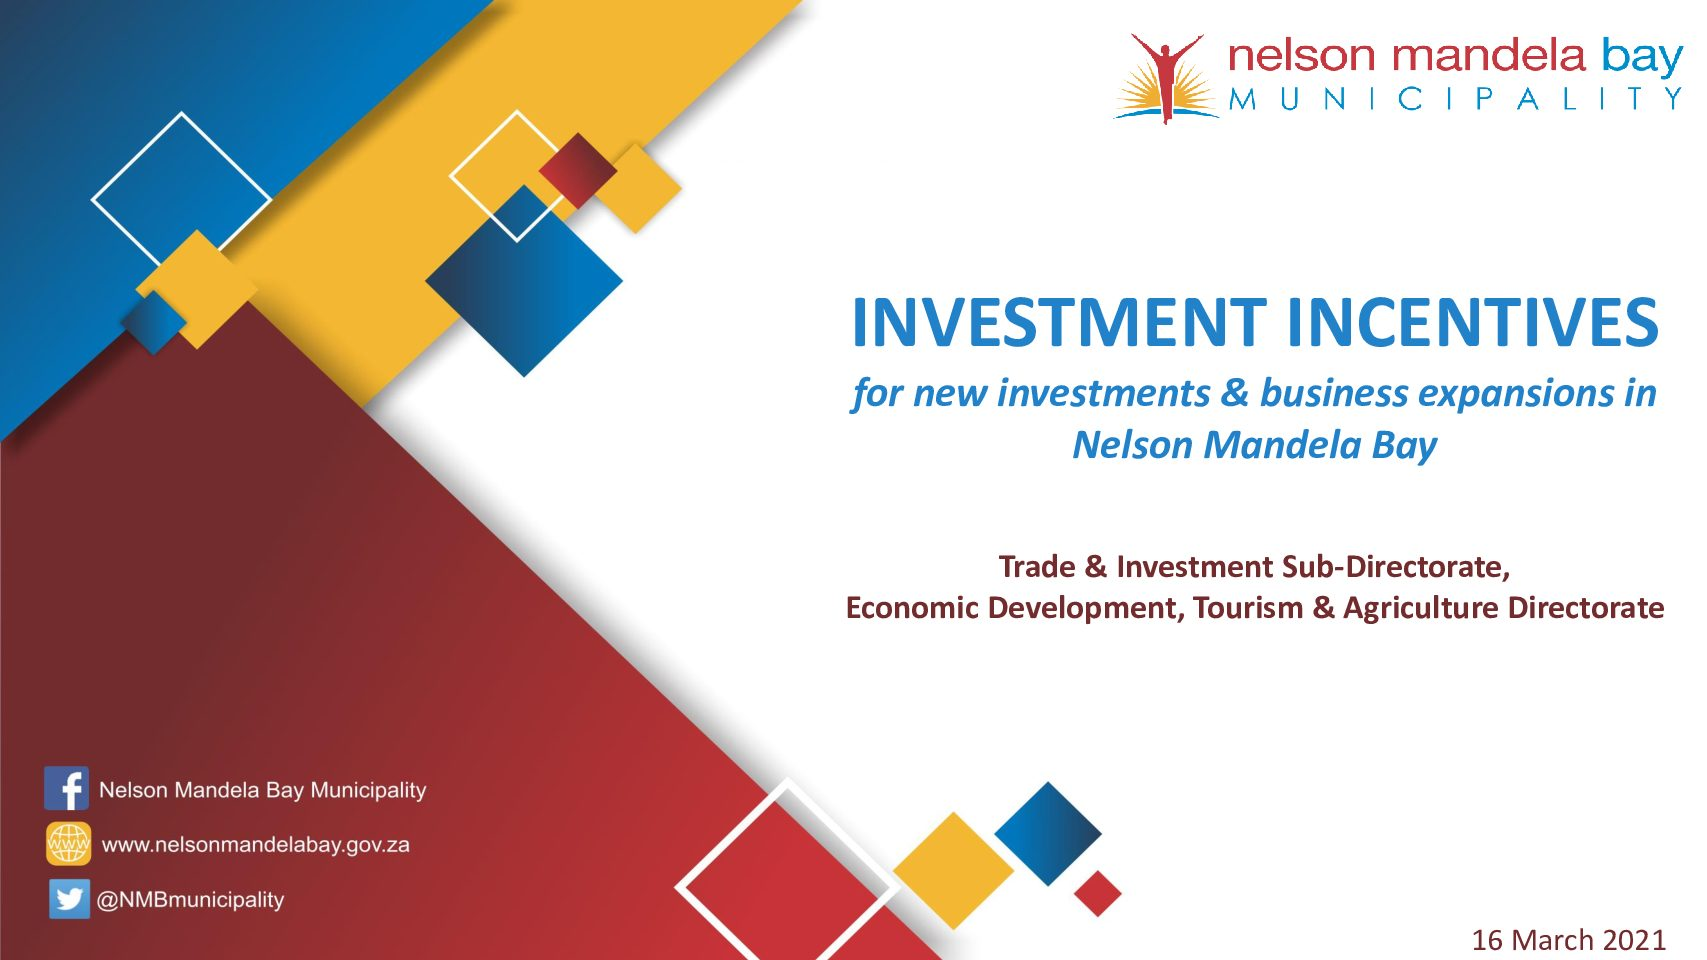 NMBM offers financial incentives to attract business investment